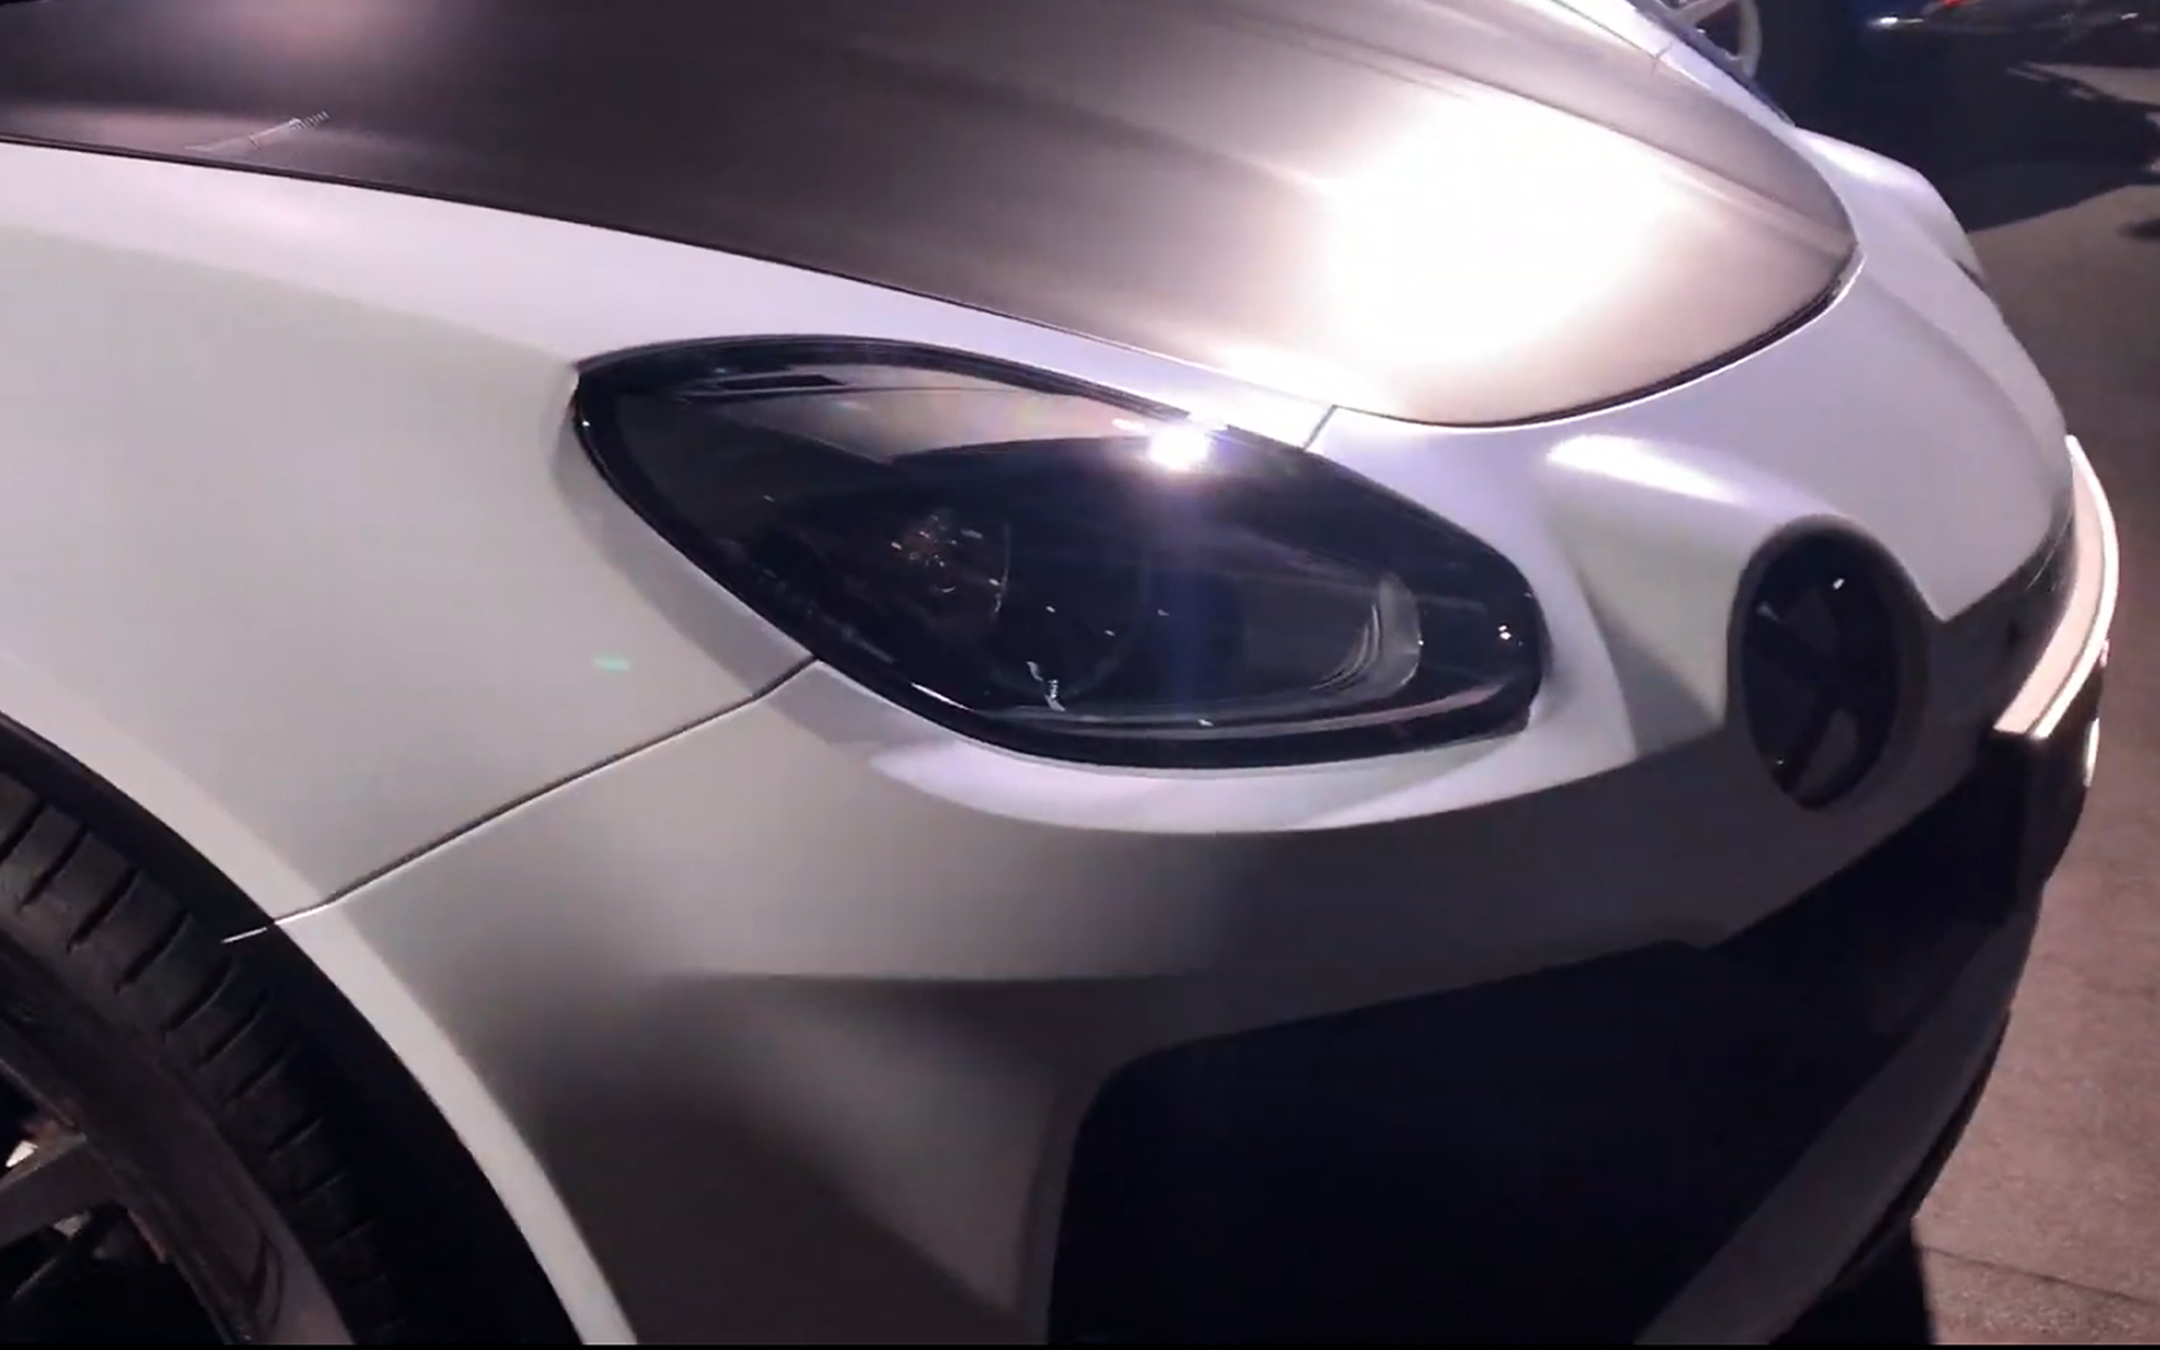 Alpine A110 Sports X - 2020 - front light - preview - showcar - photo screen video - FAI2020